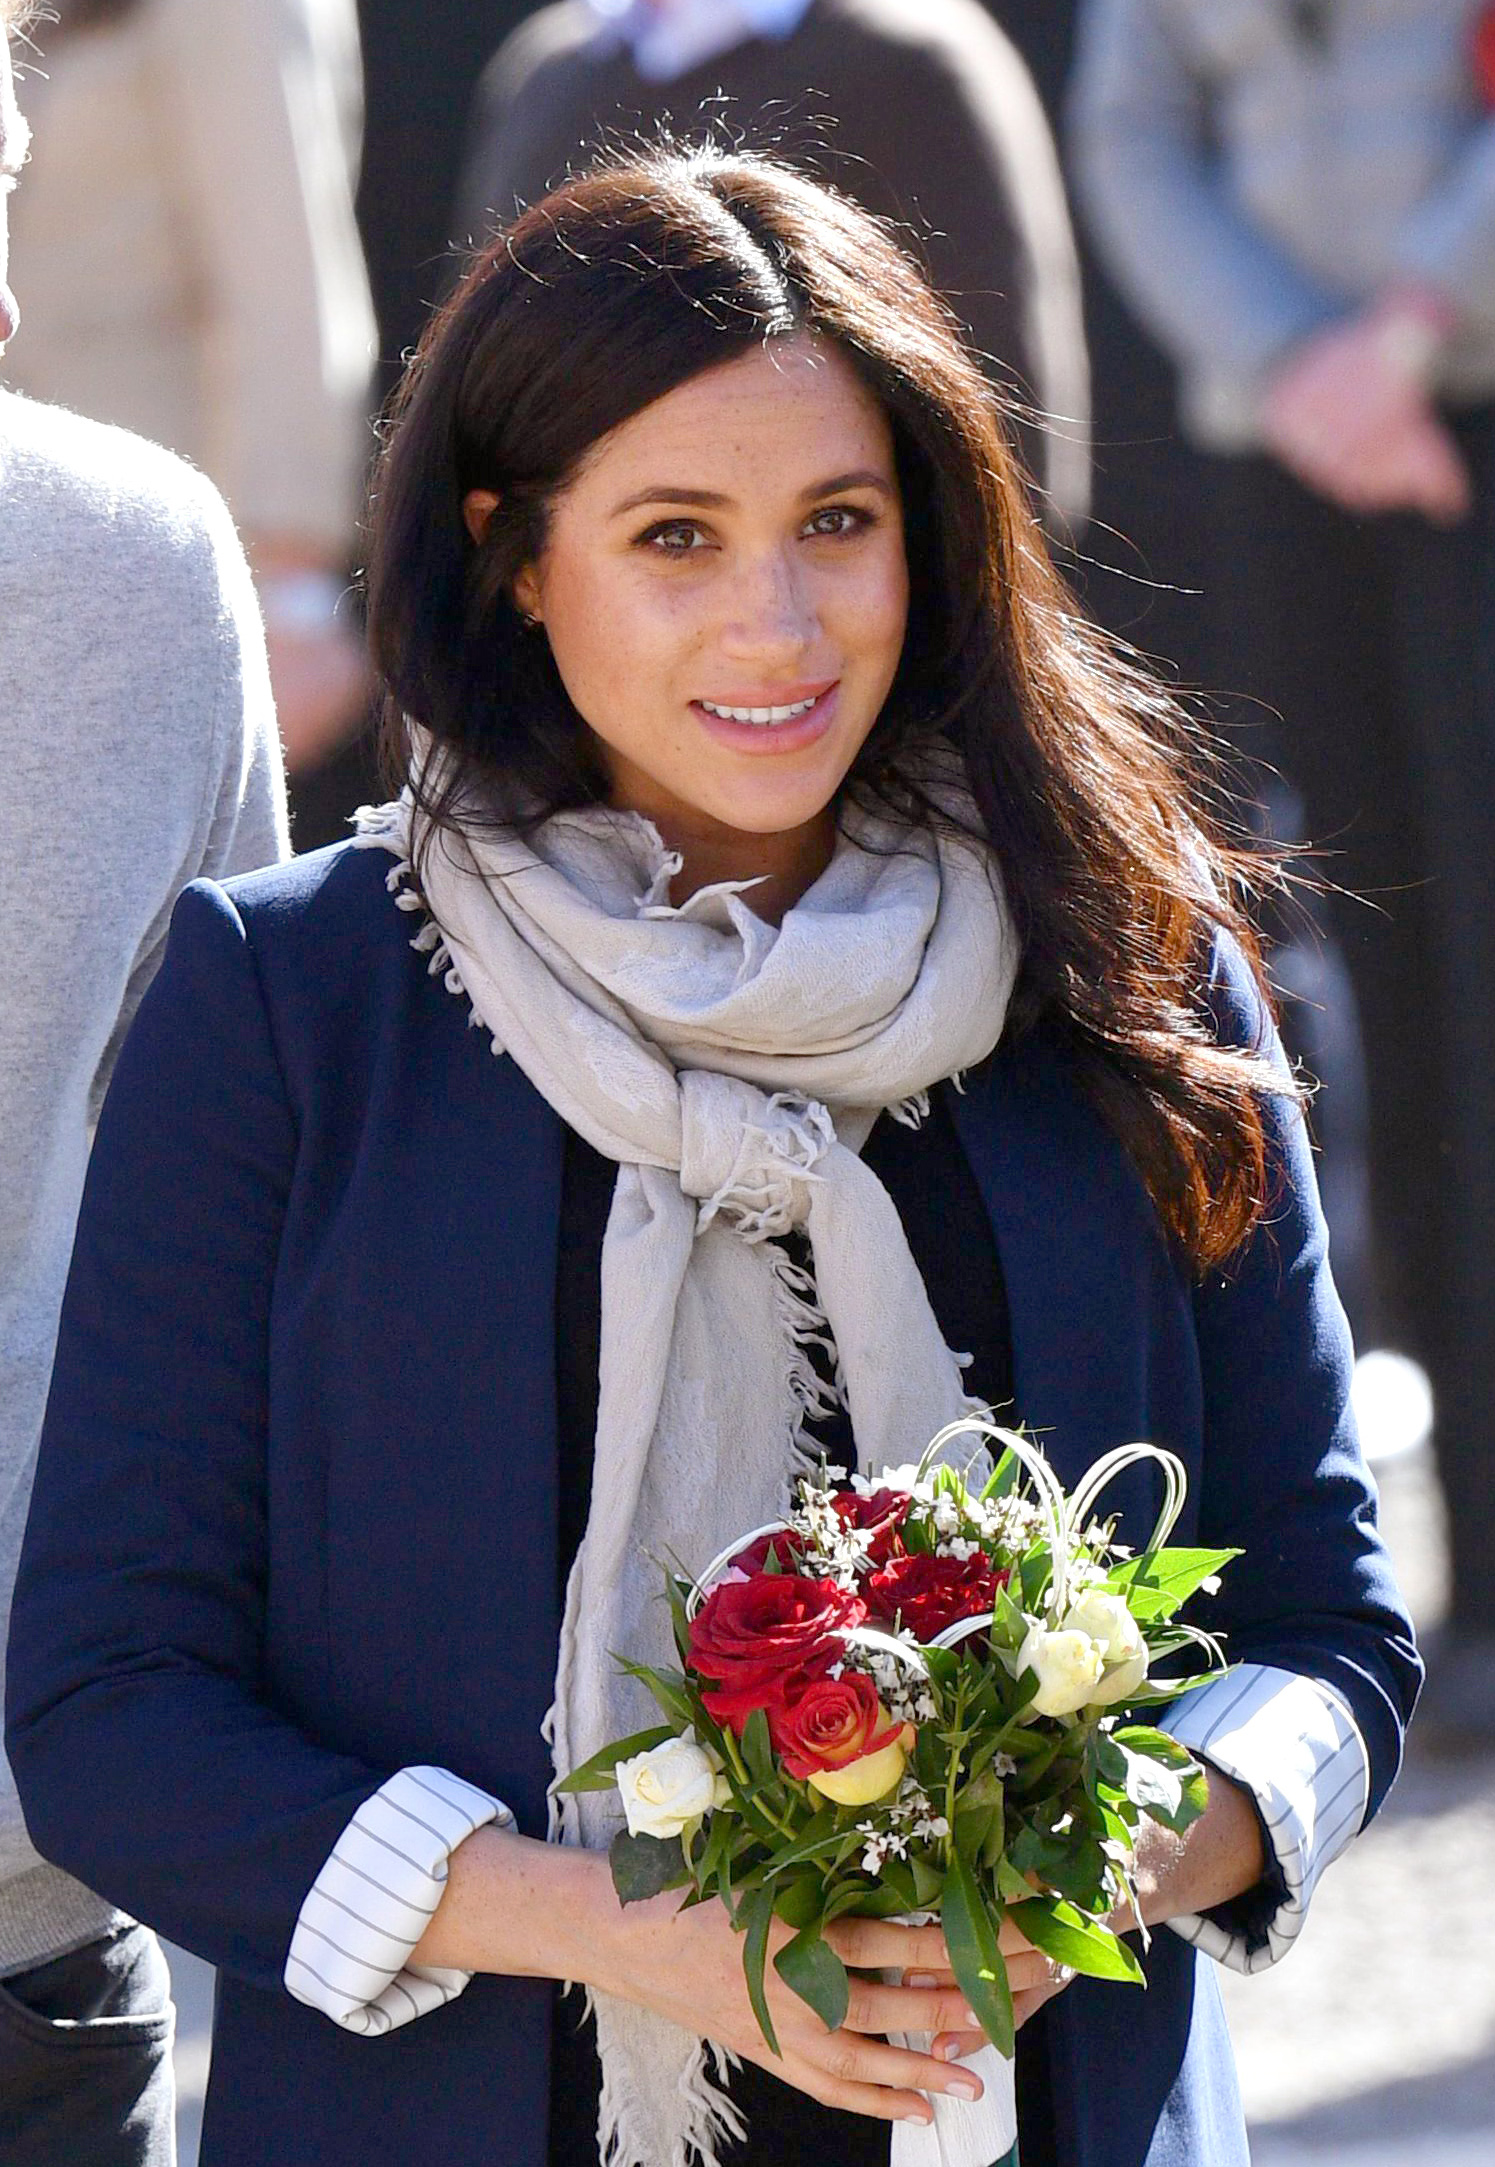 The Duke And Duchess Of Sussex Visit Morocco - Day 2